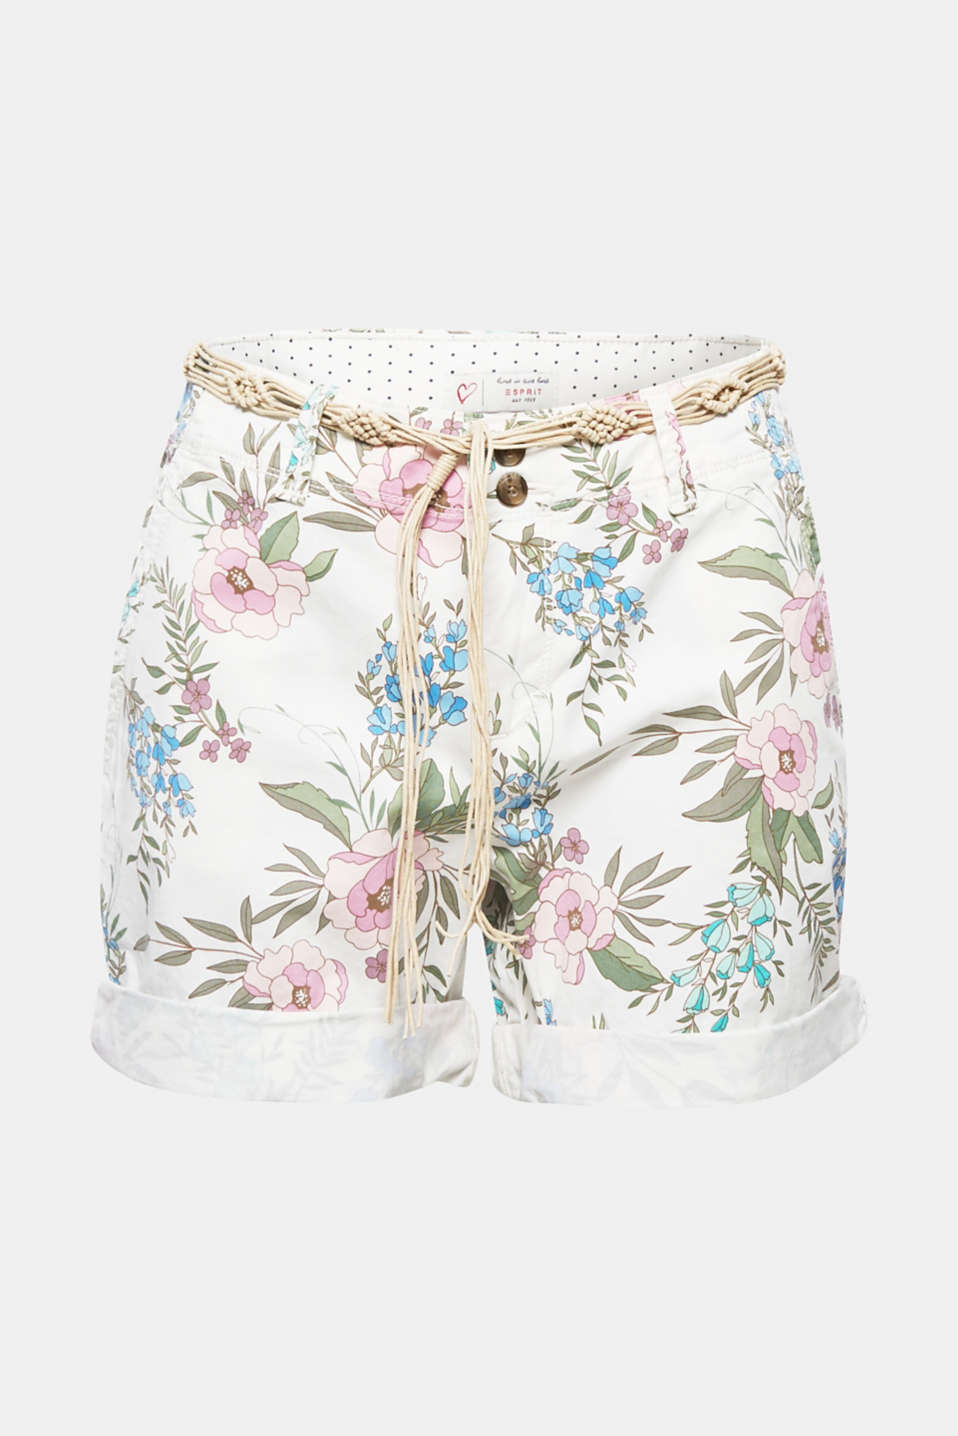 These light, stretch cotton shorts with a colourful floral print and decorative, macramé tie-around belt radiate a heavenly, holiday vibe!